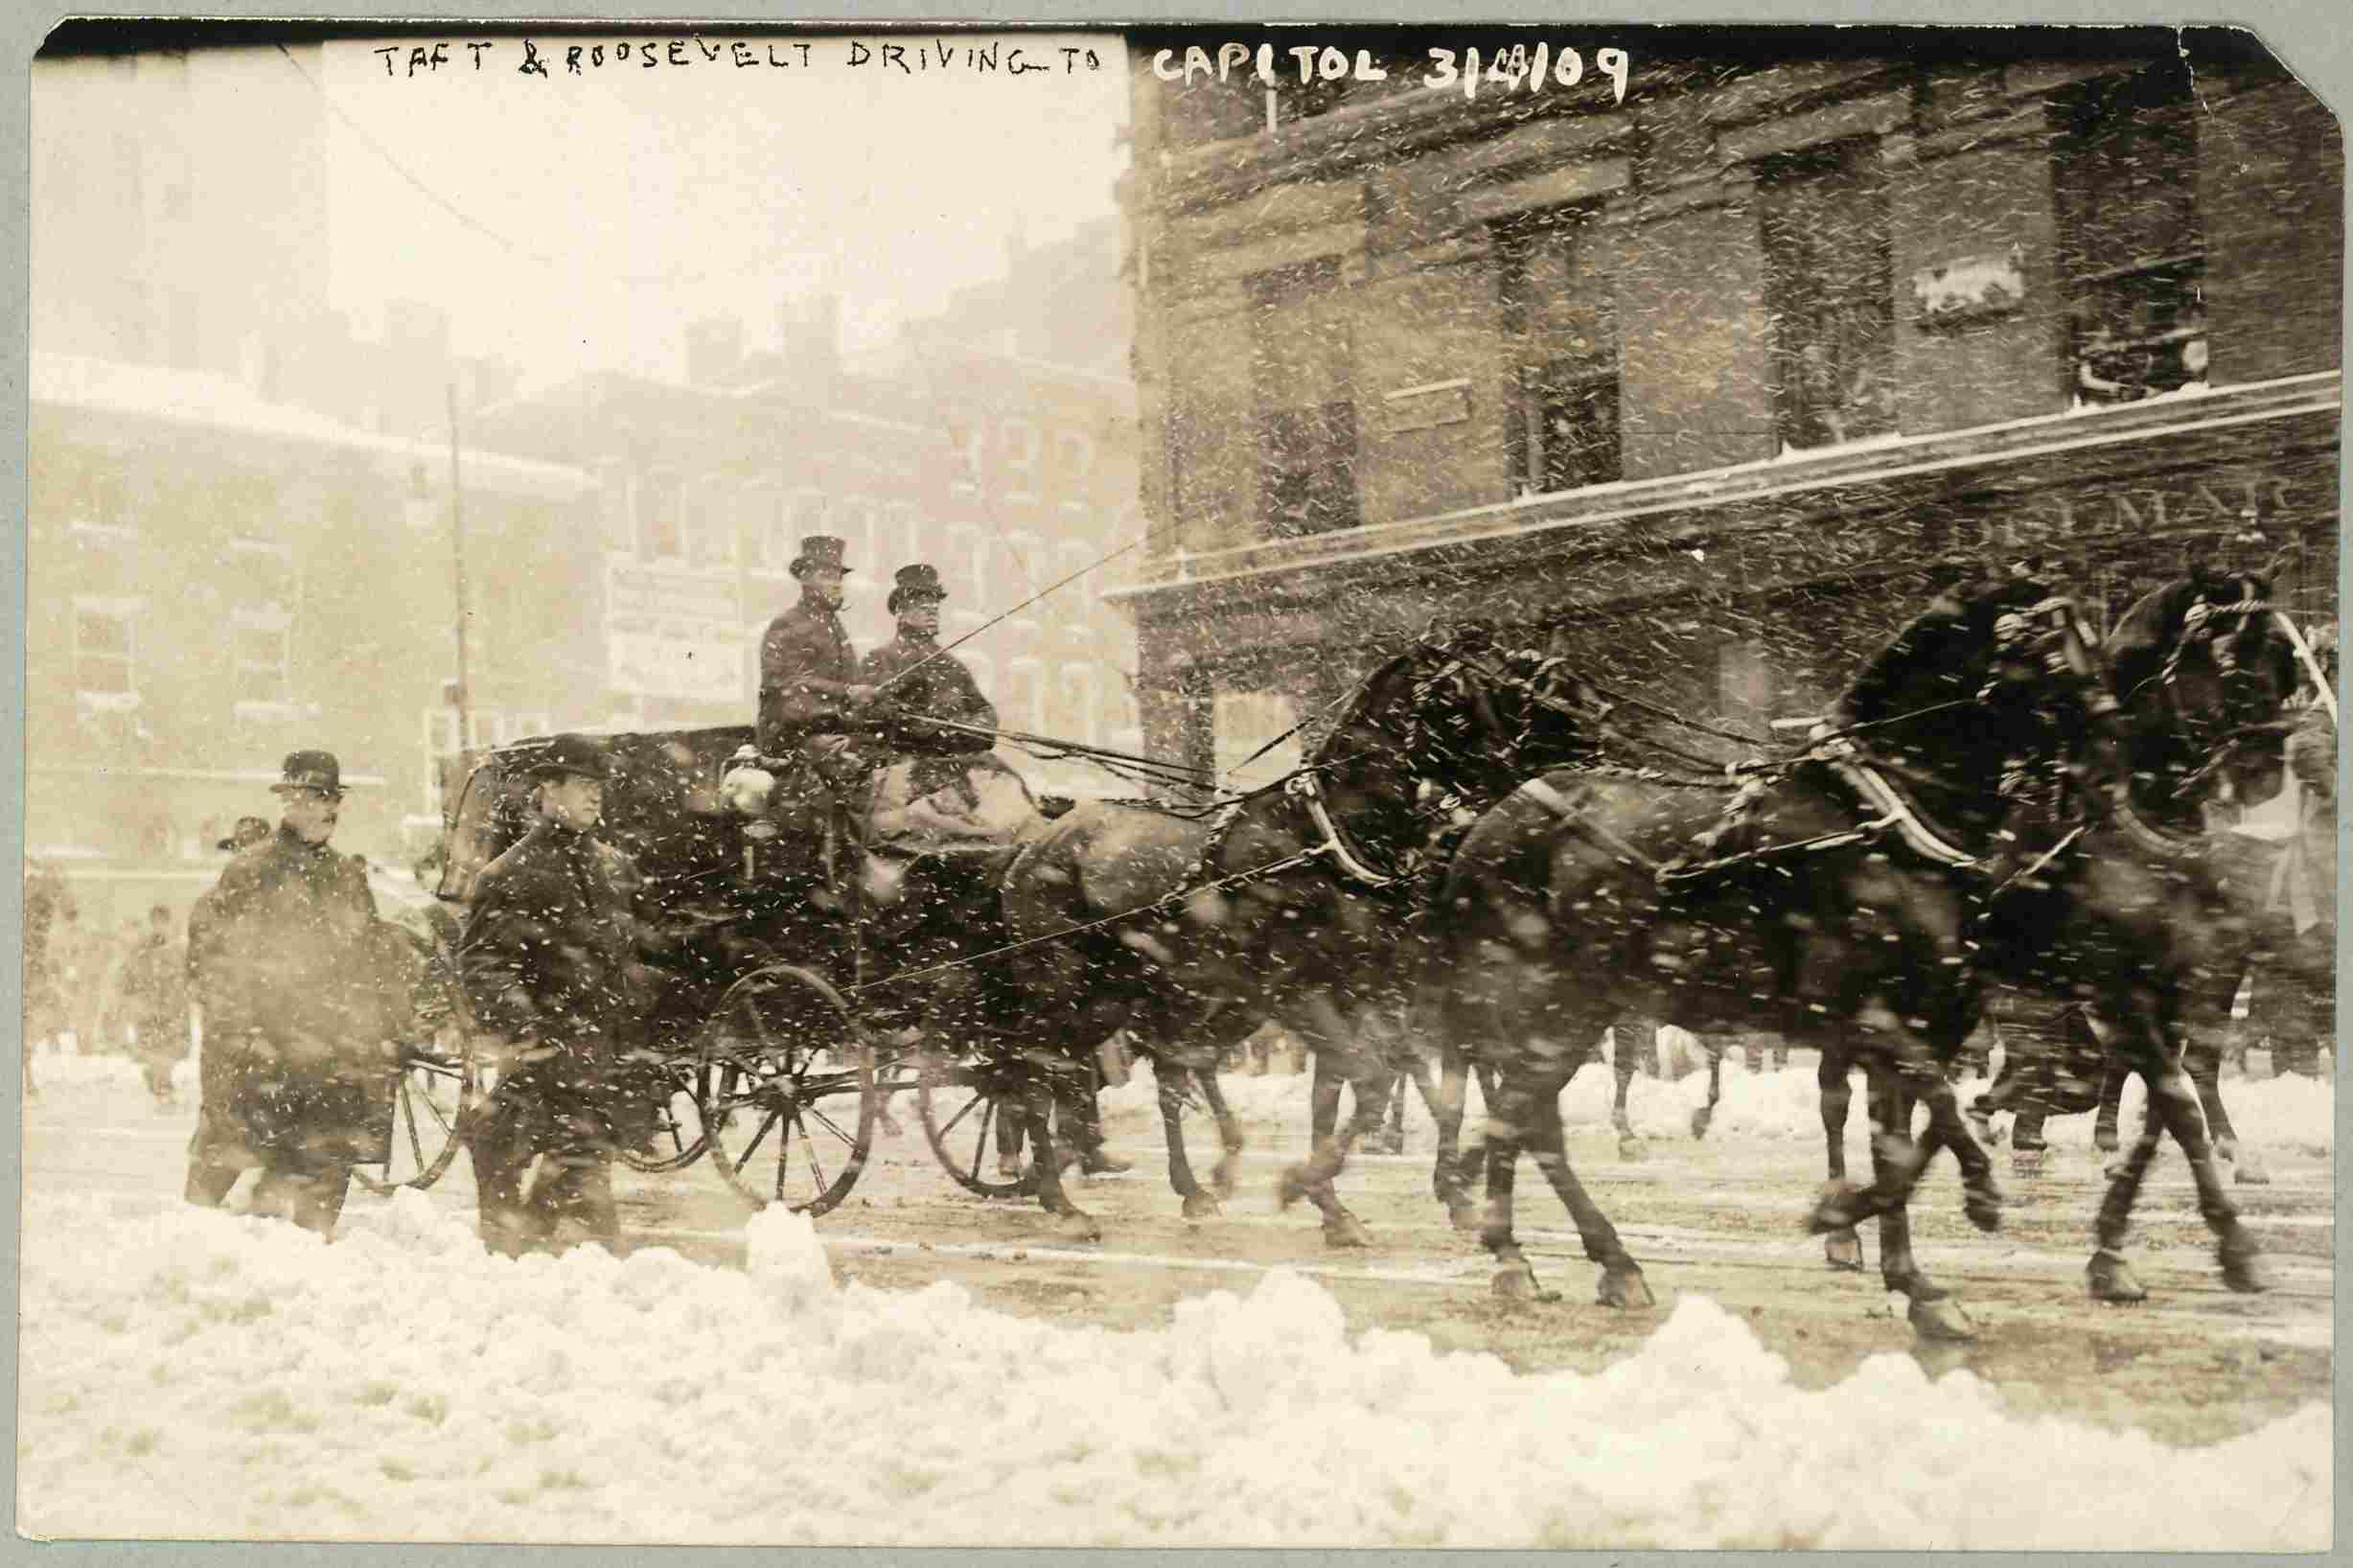 President-elect Taft on his way to his presidential inauguration